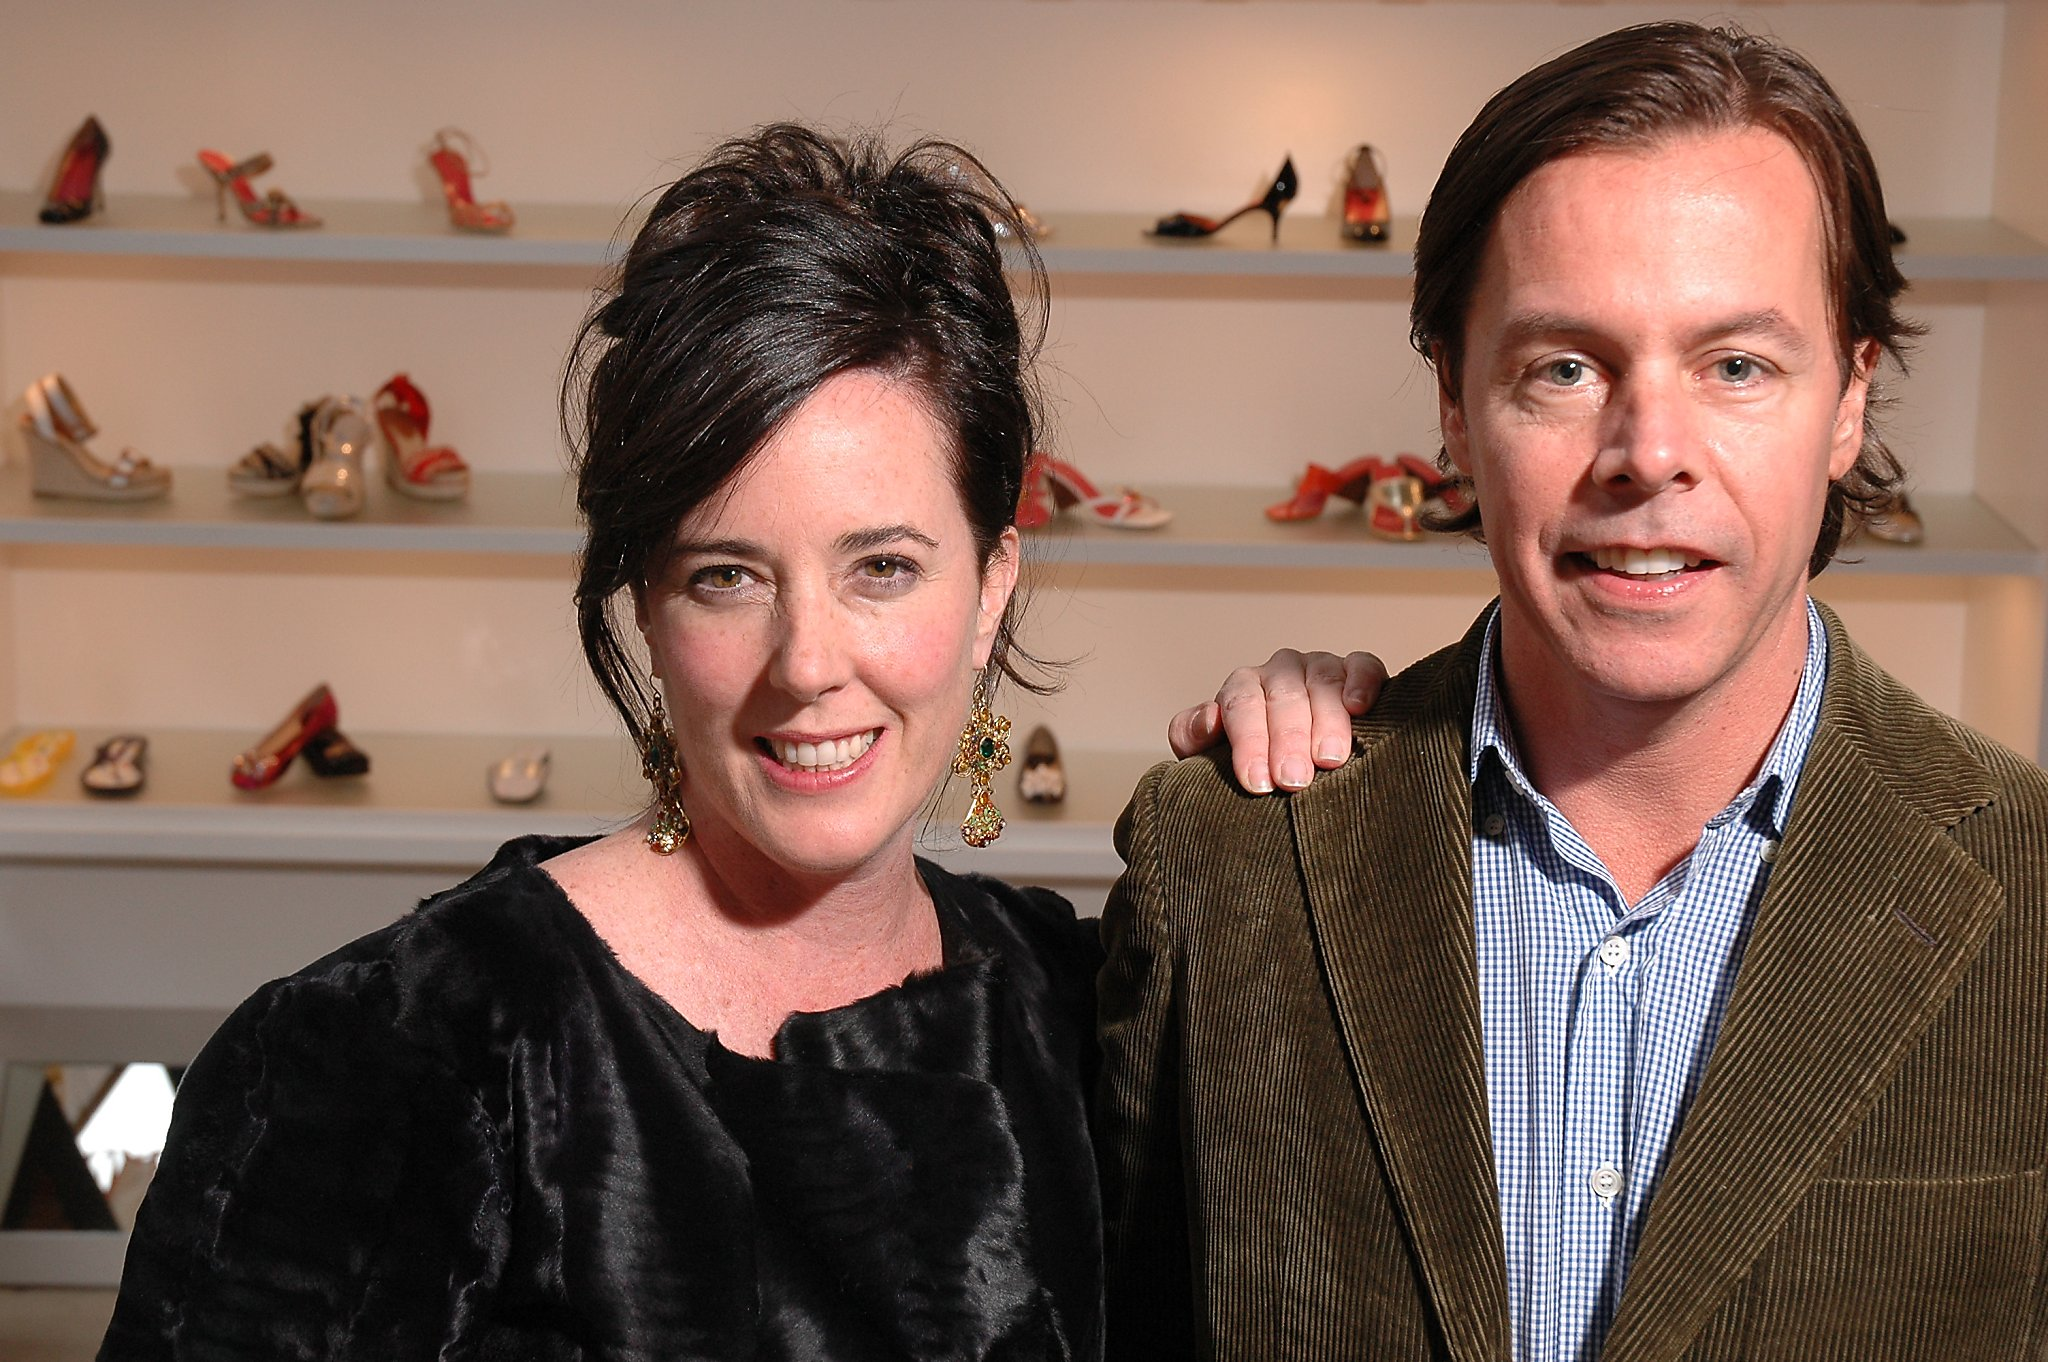 Kate Spade defined chic lifestyle for millions of women